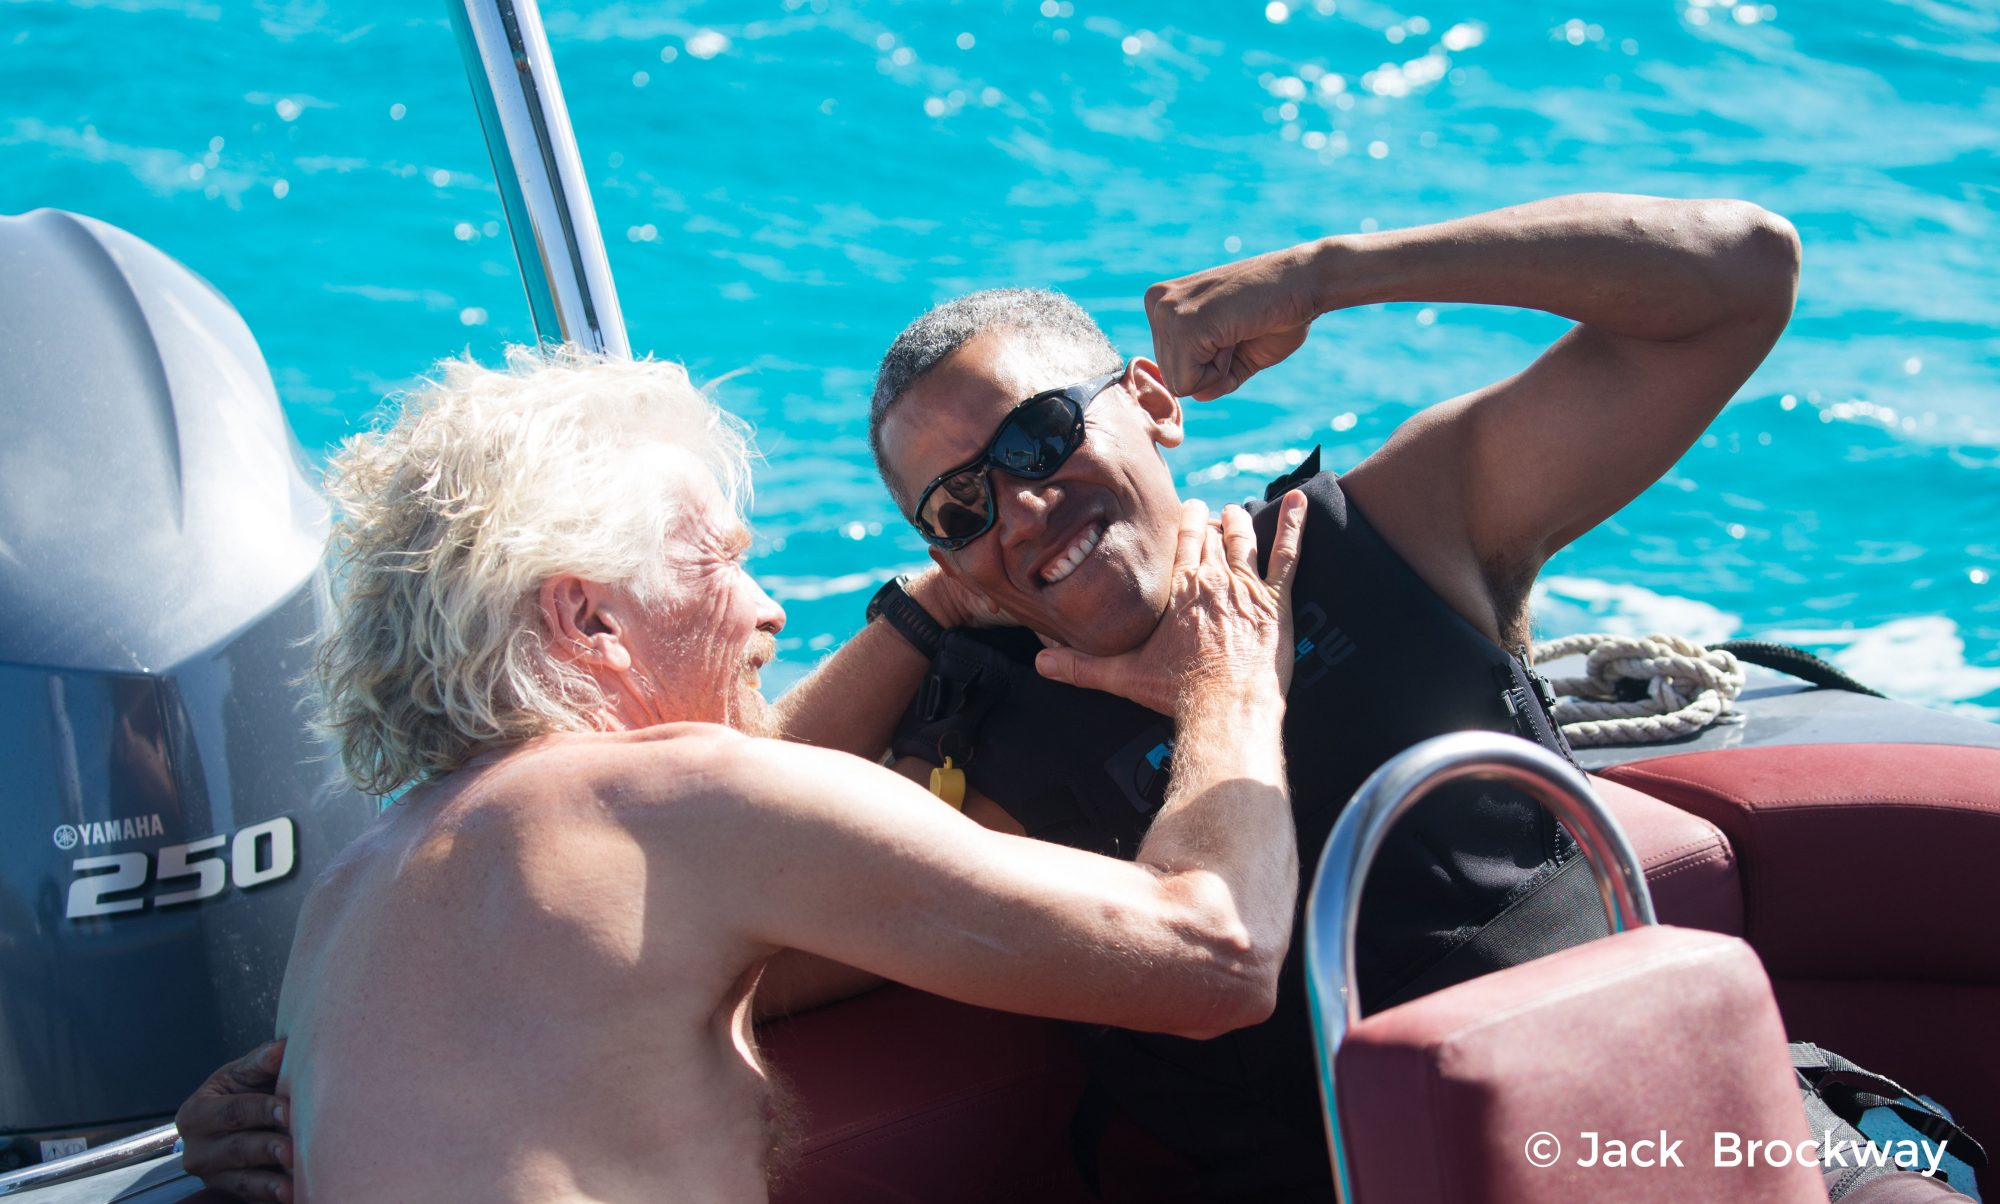 Barack Obama and Richard Branson